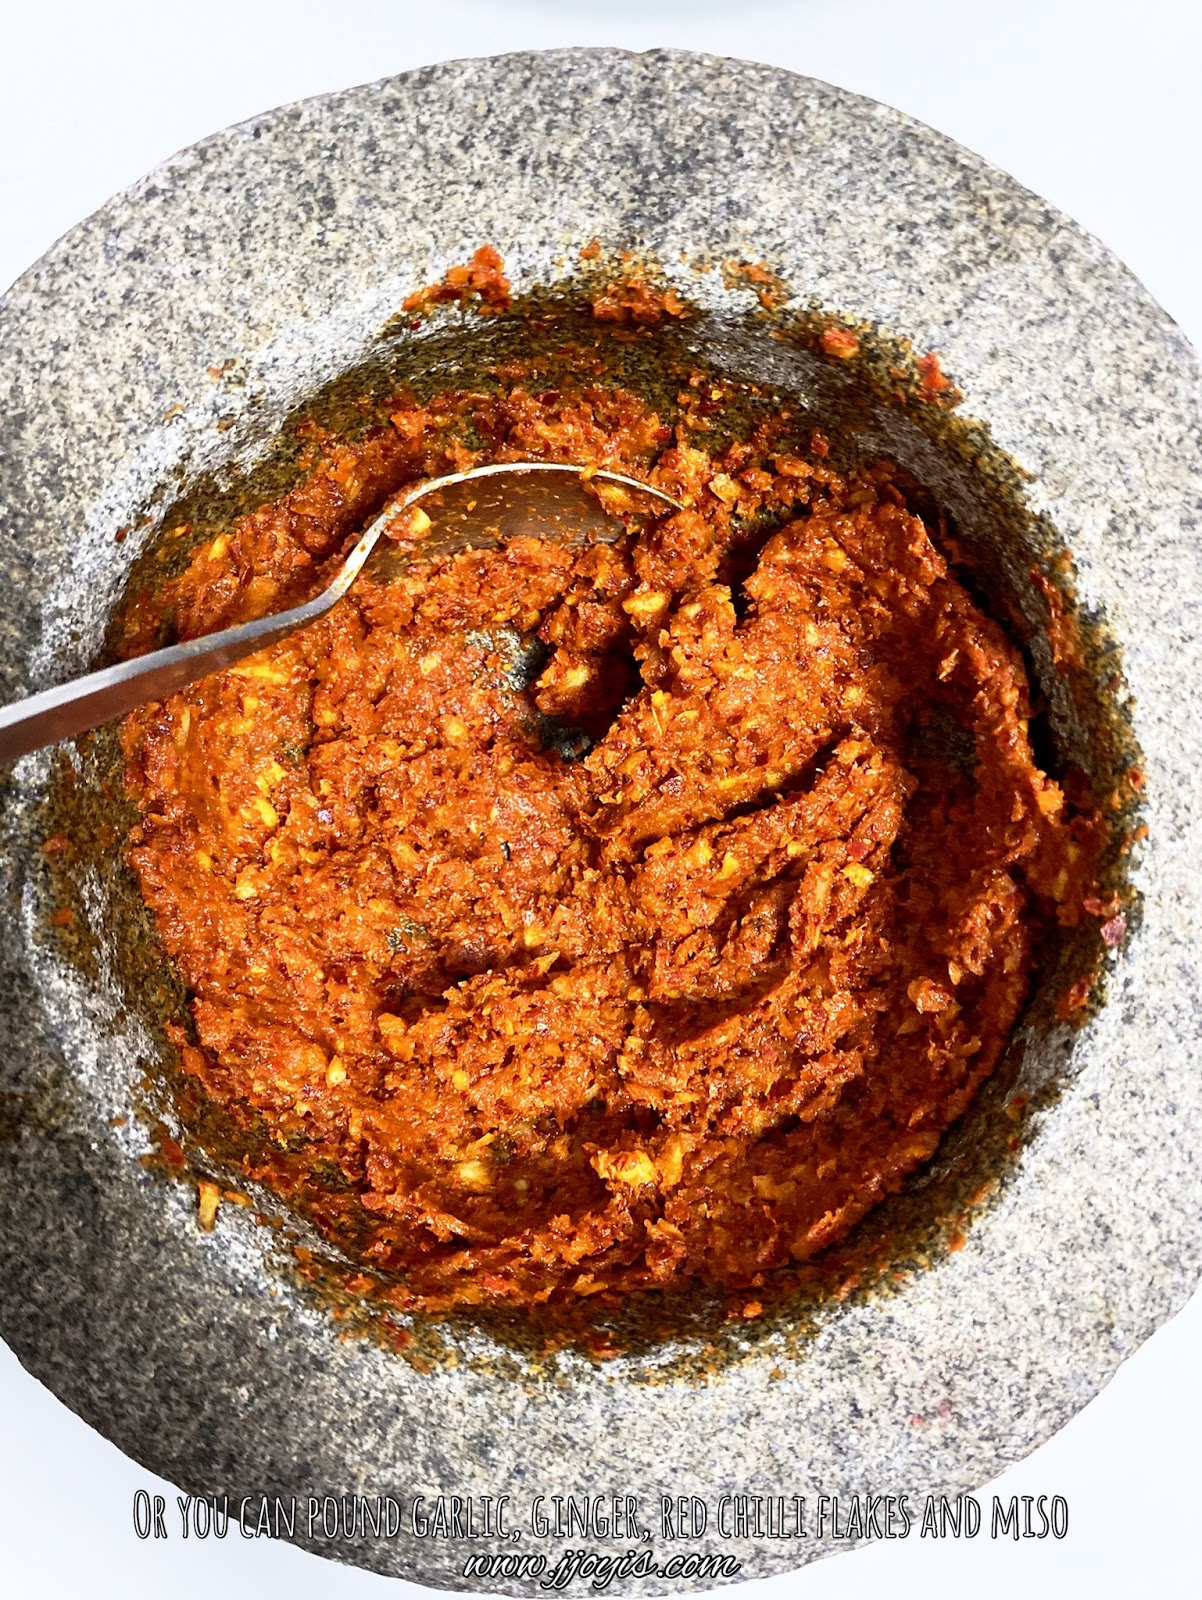 pound spices into paste with mortar